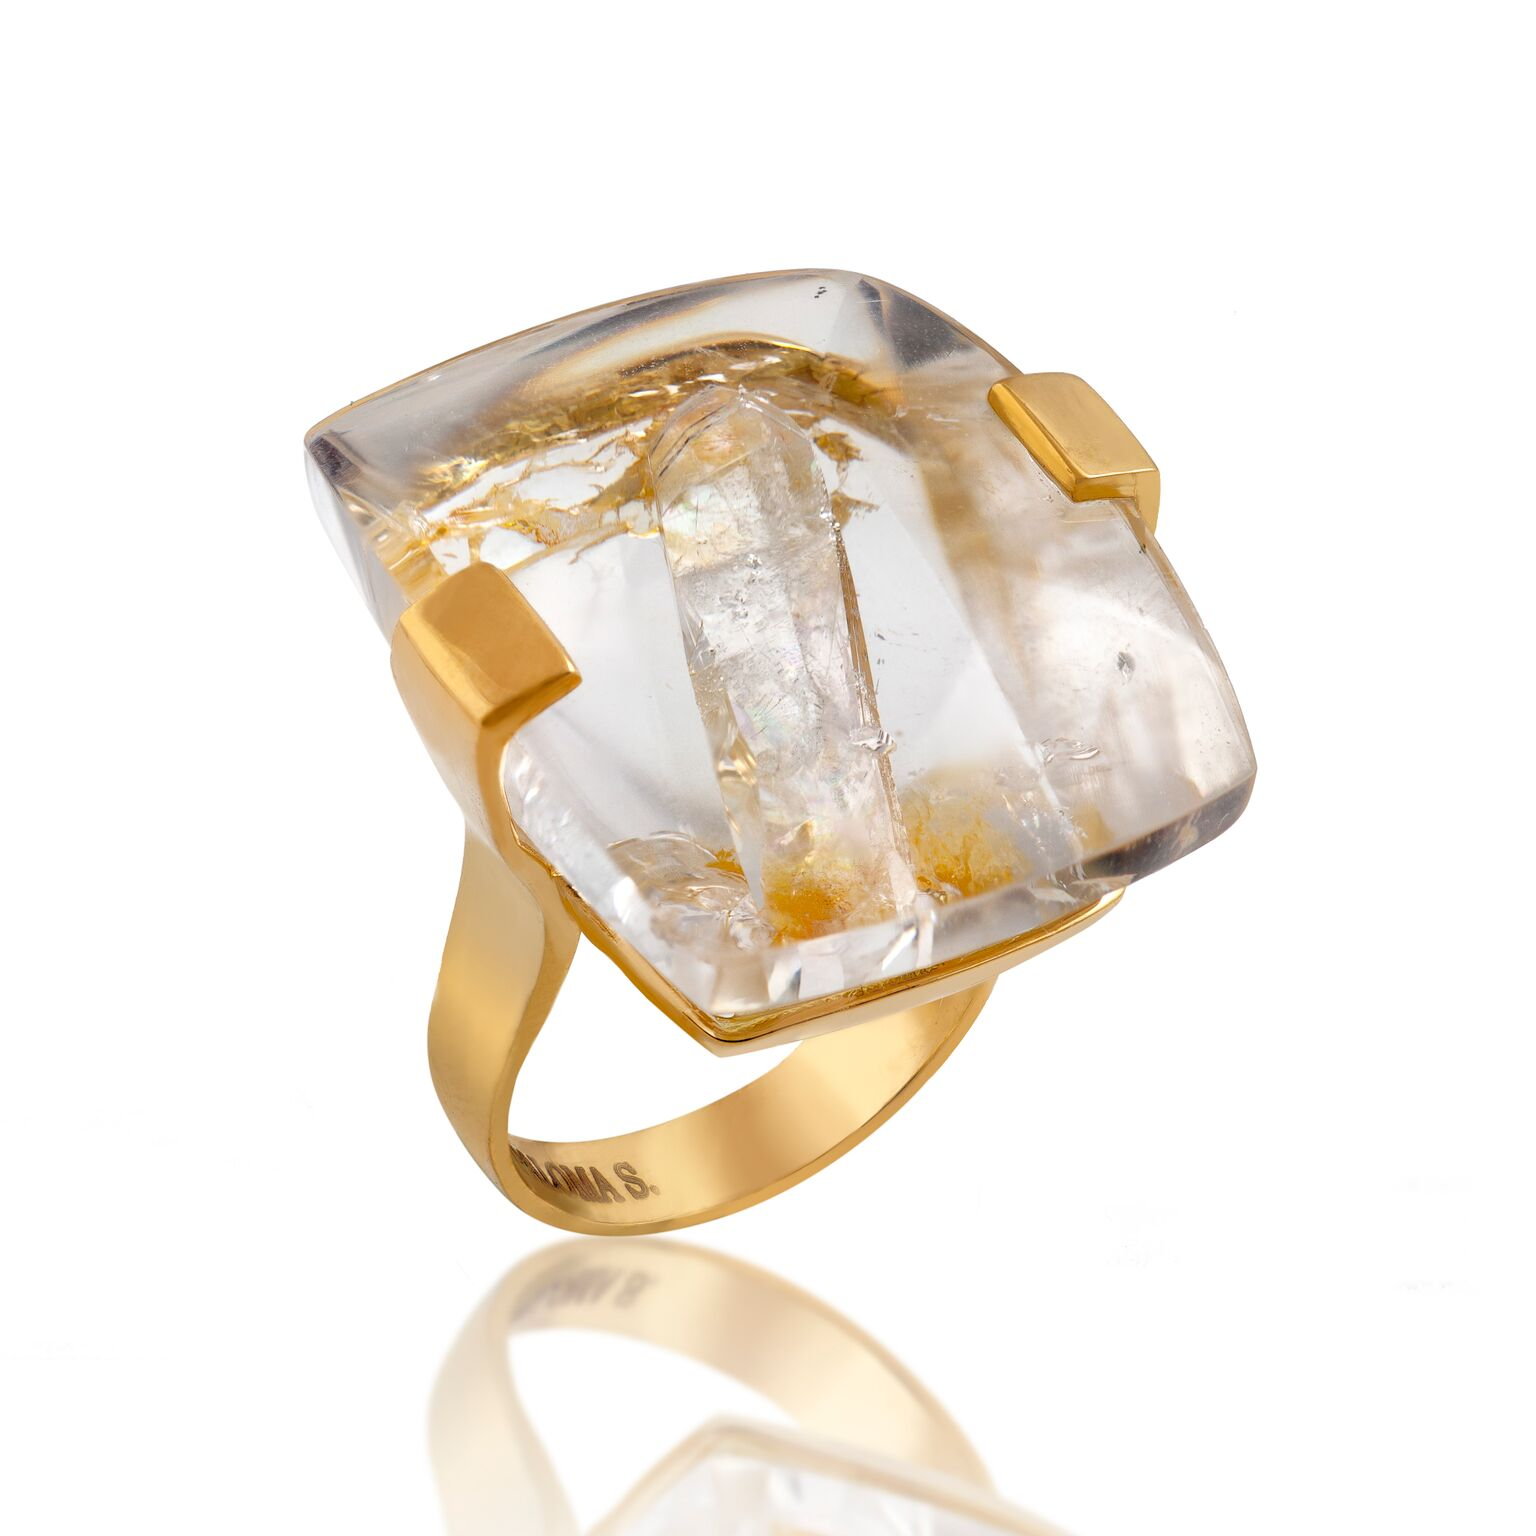 An unusual crystal-embedded-in-a-crystal with rutile needles set in 18k yellow gold ring